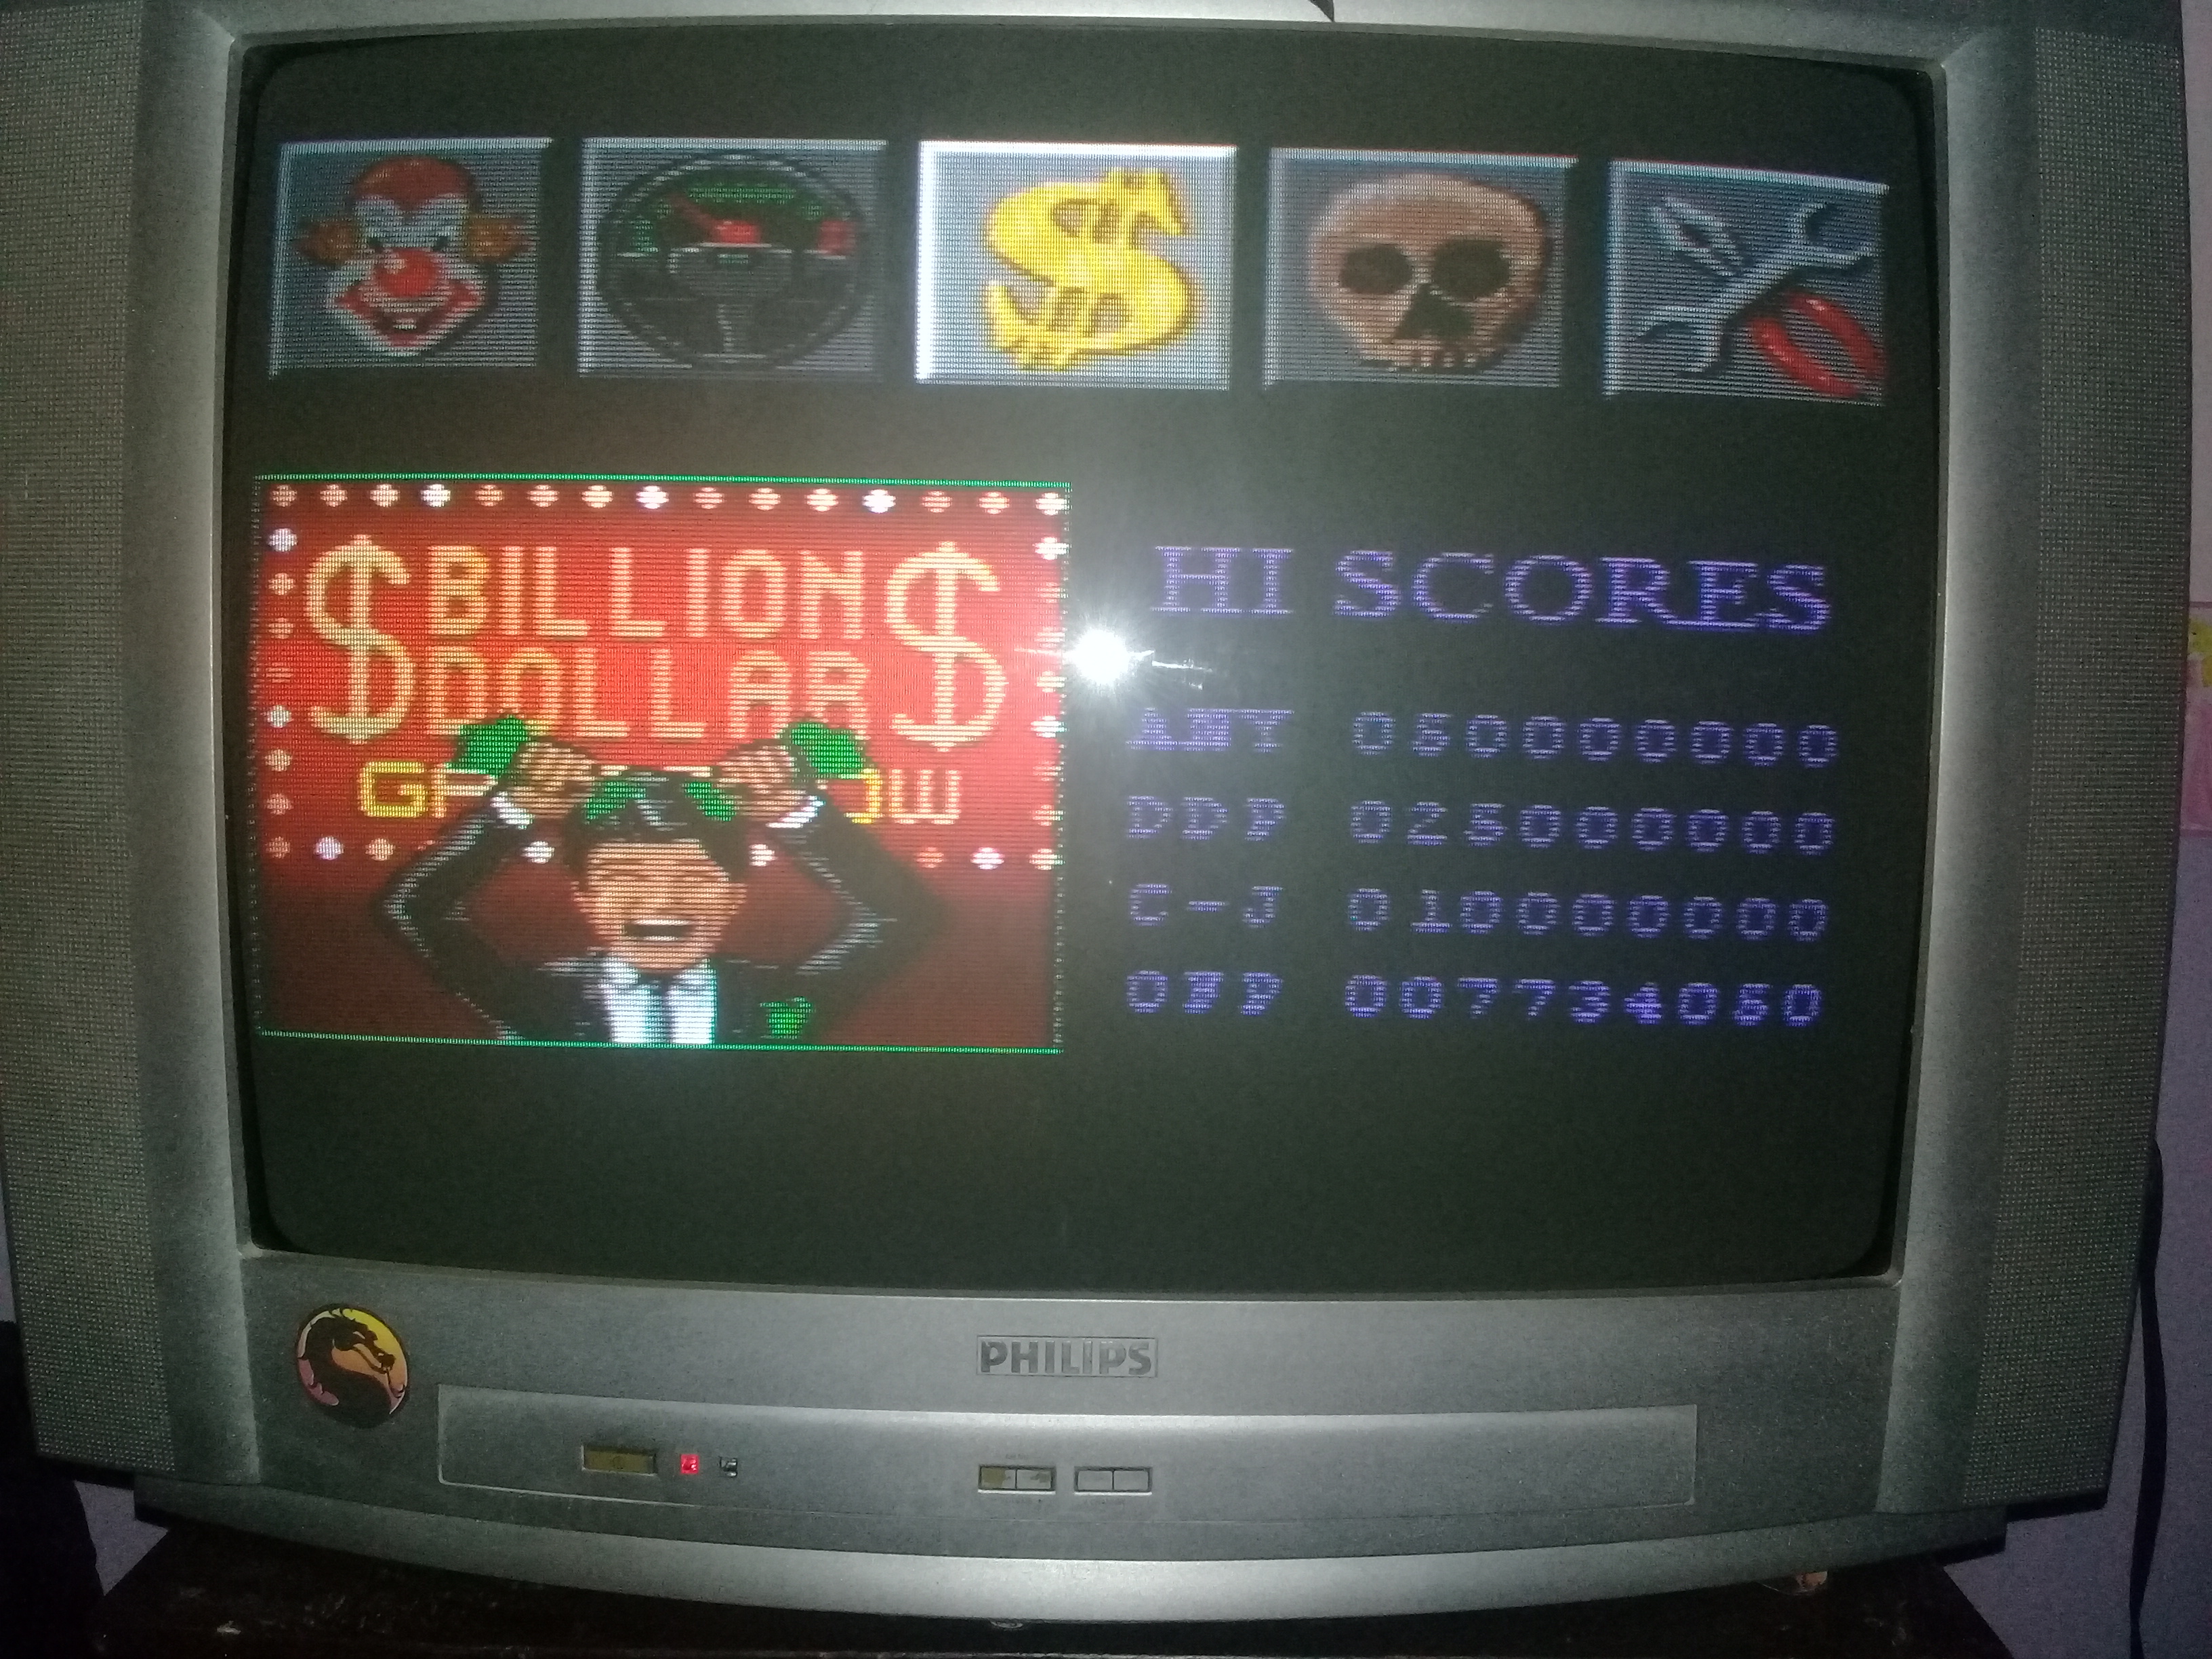 omargeddon: Pinball Fantasies: Billion Dollar Gameshow (SNES/Super Famicom) 7,734,050 points on 2020-04-03 20:45:23